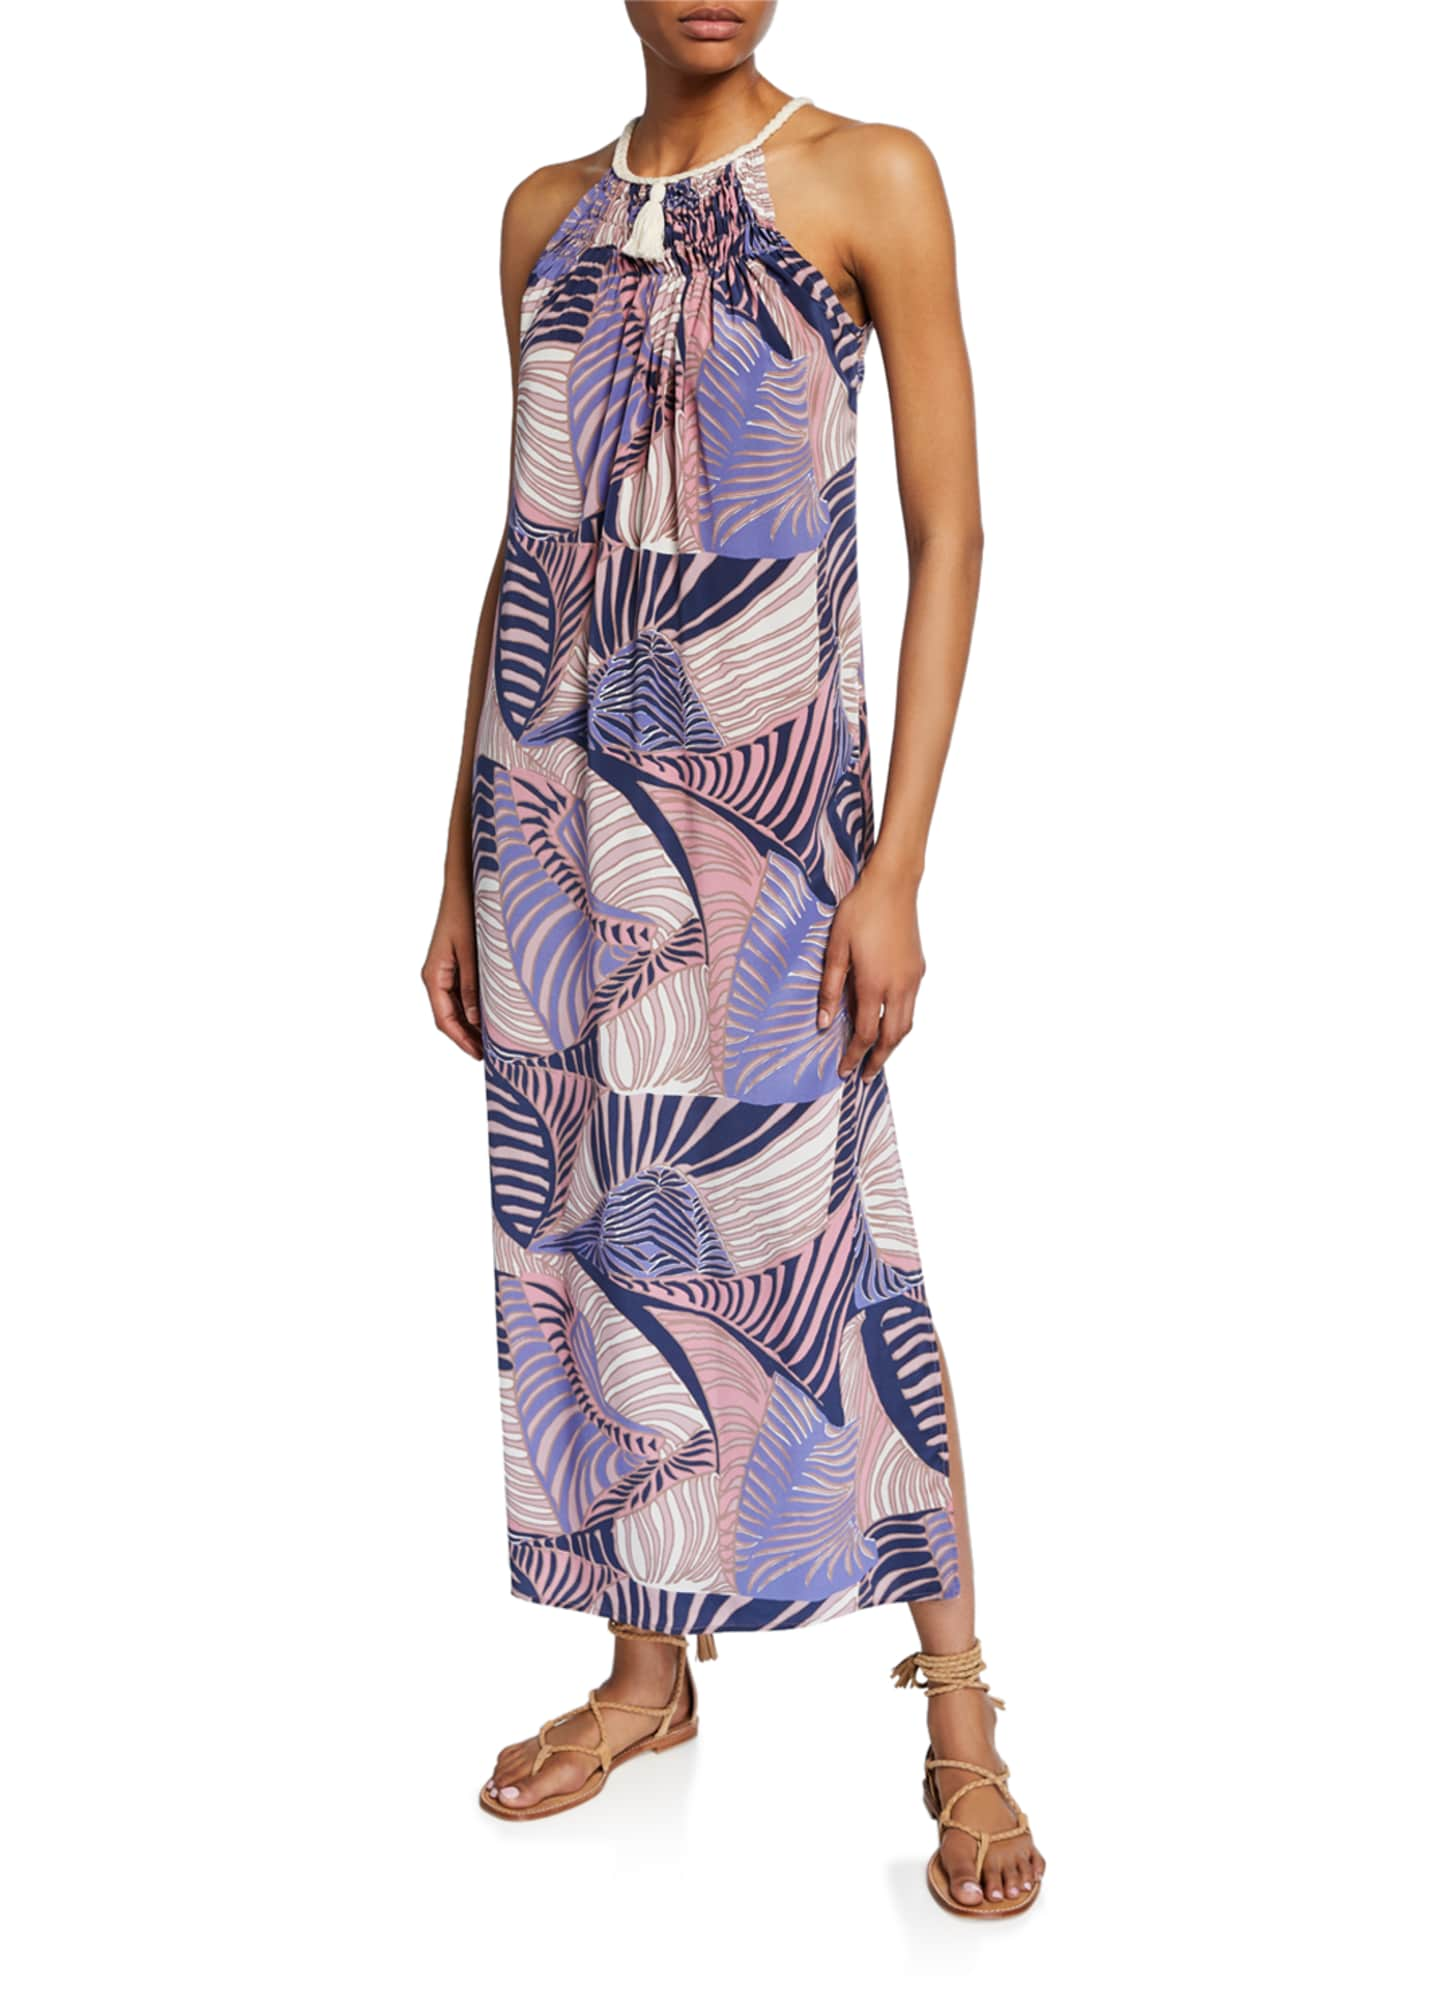 Jaline Valerie Sleeveless Coverup Dress with Braided Collar